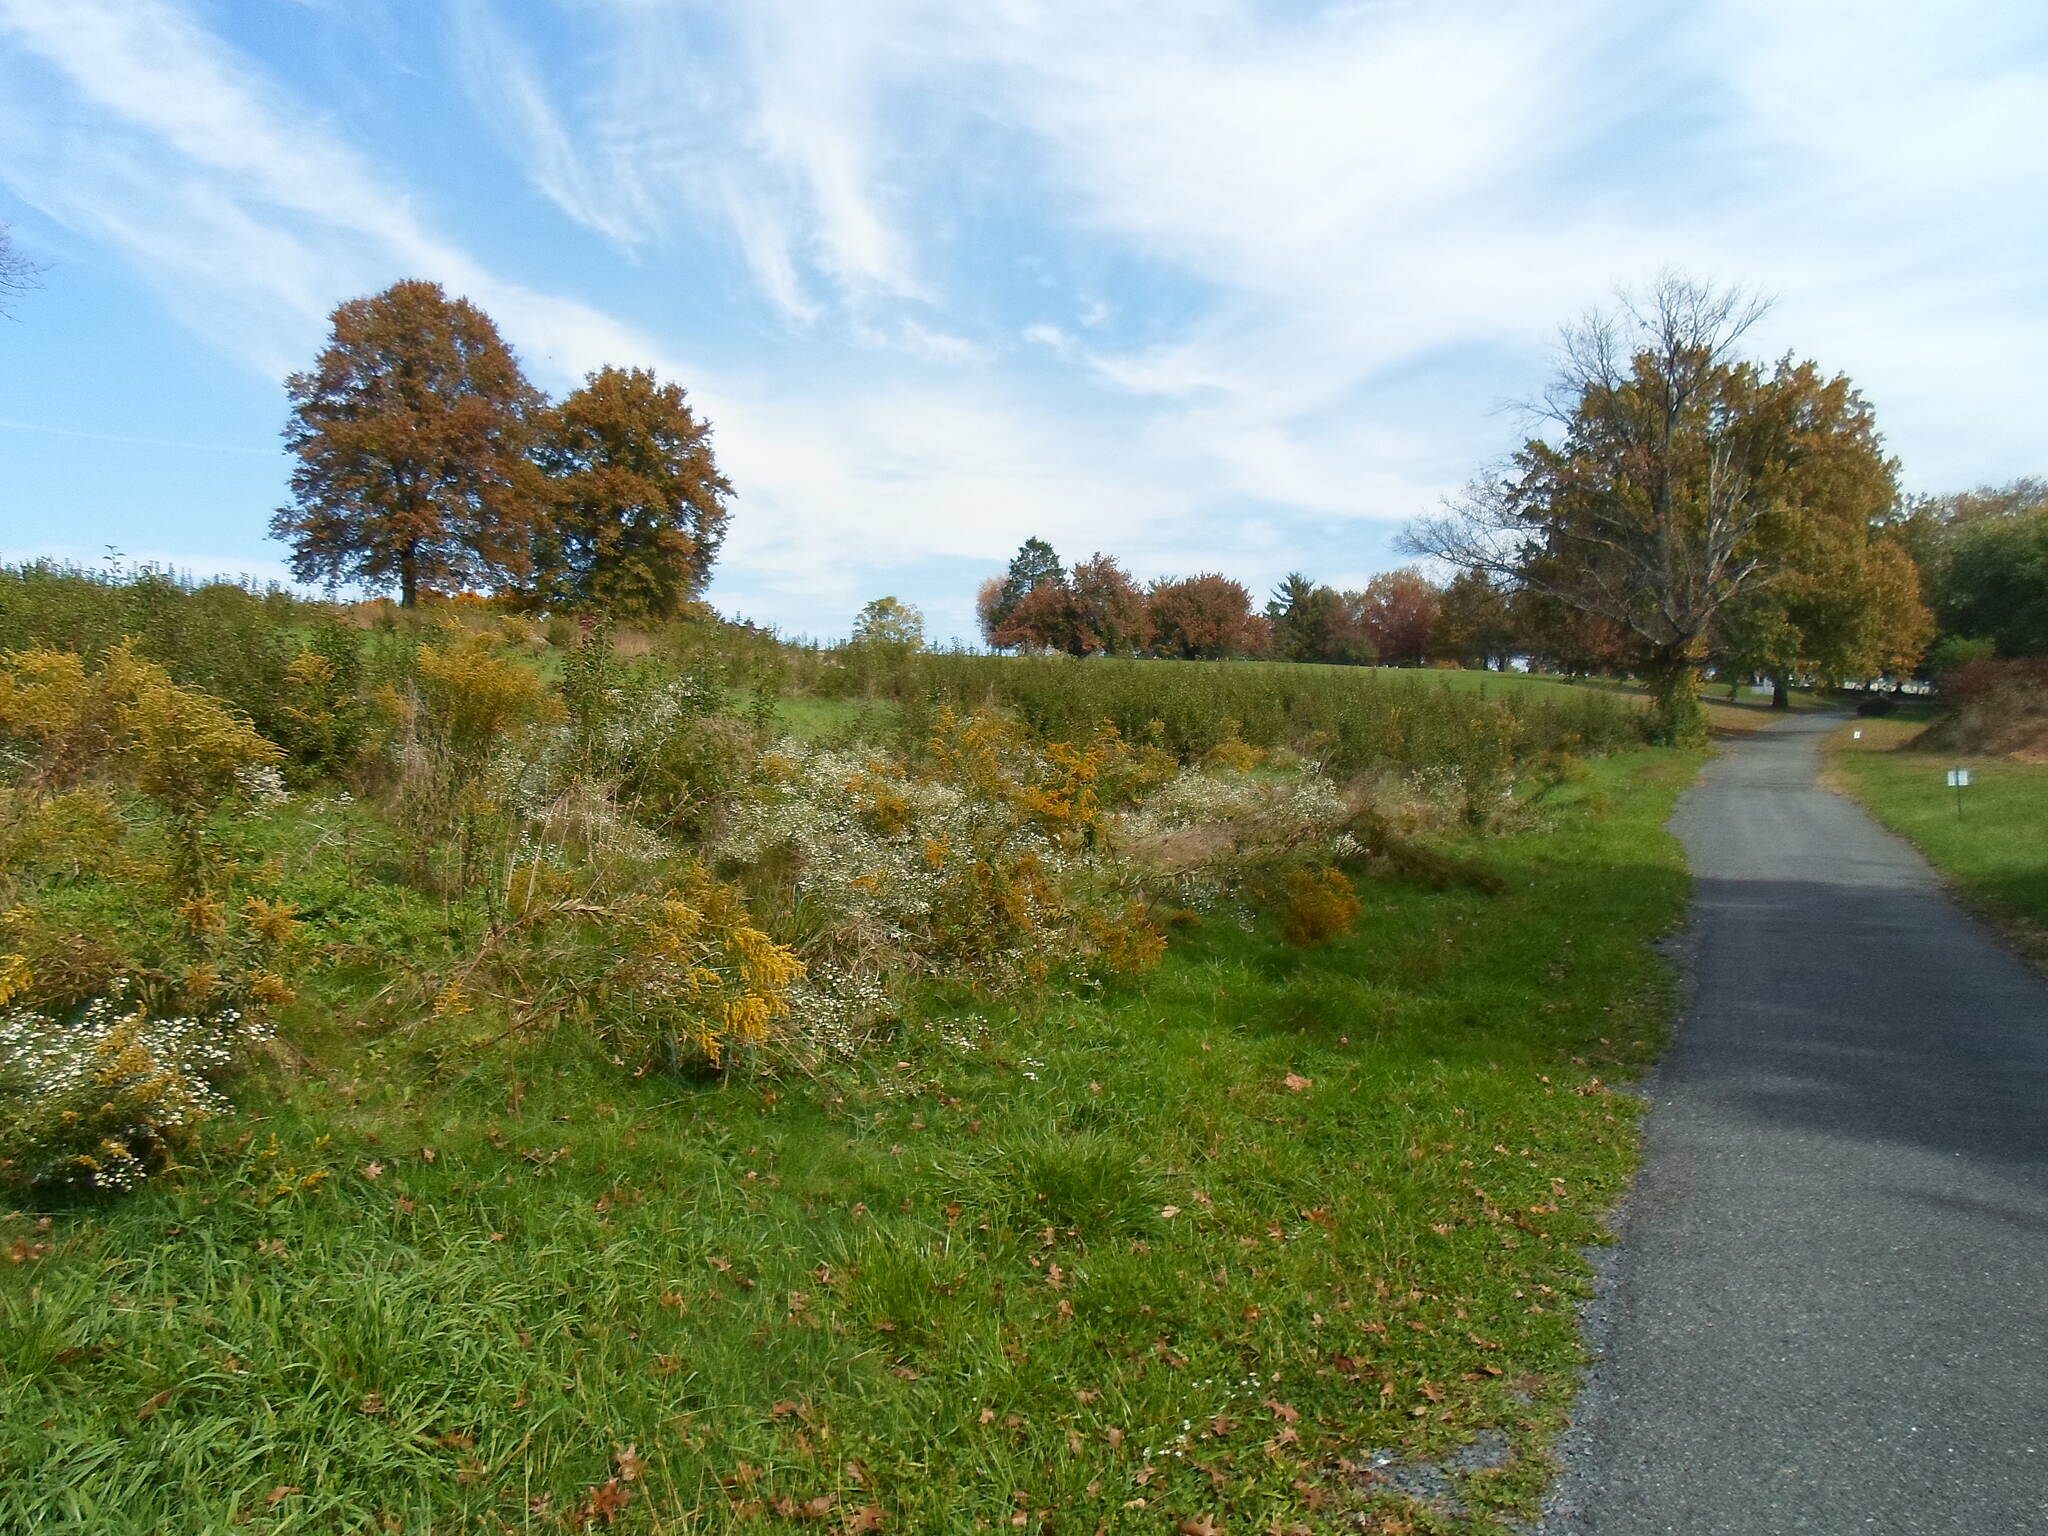 Capital Area Greenbelt Capital Area Greenbelt Meadows on the north end of the city, west of Edgemont Road.